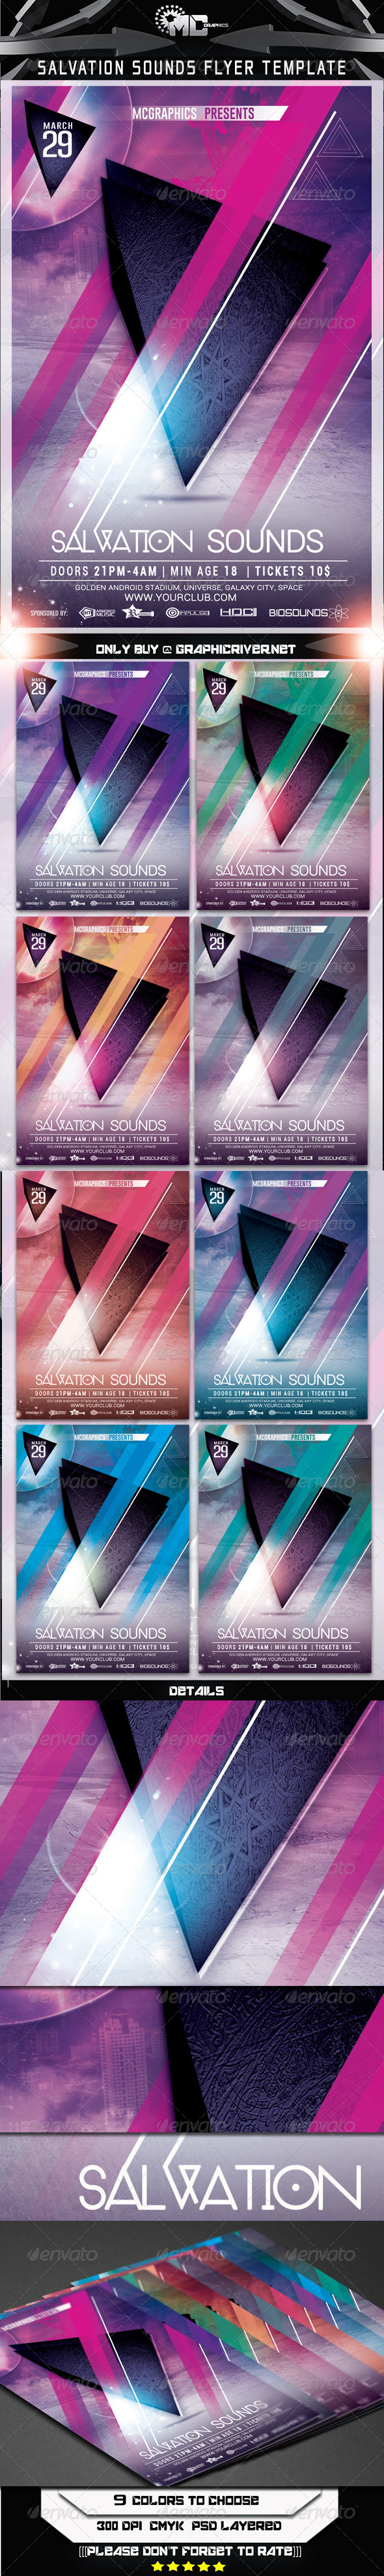 Salvation Sounds Flyer Template - Clubs & Parties Events